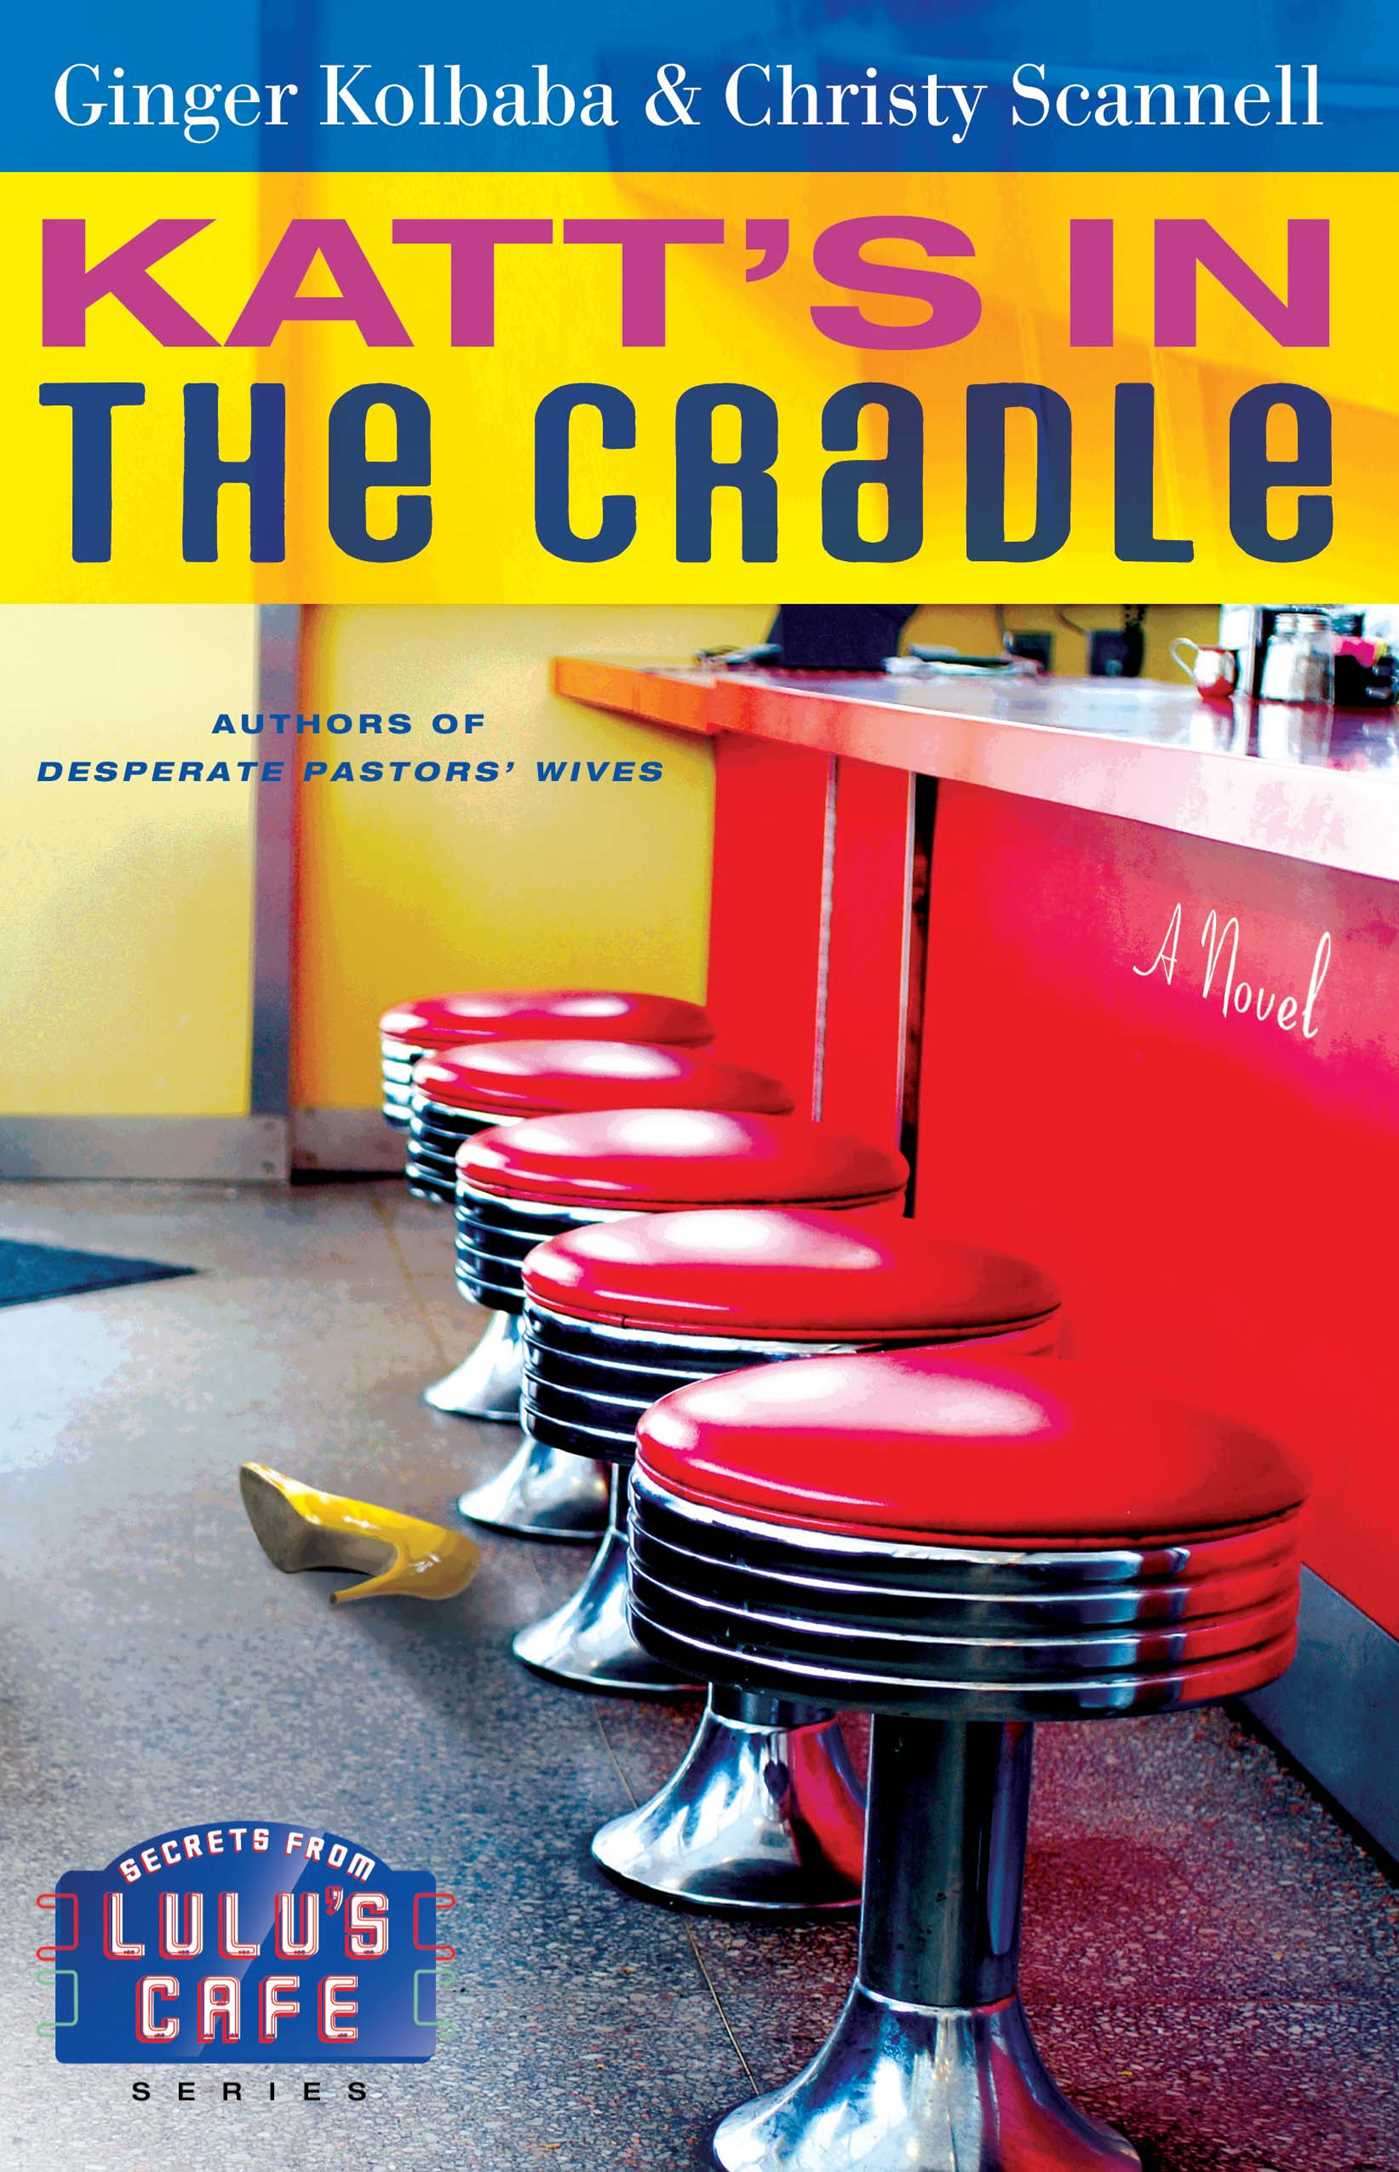 Katts-in-the-cradle-9781416543893_hr